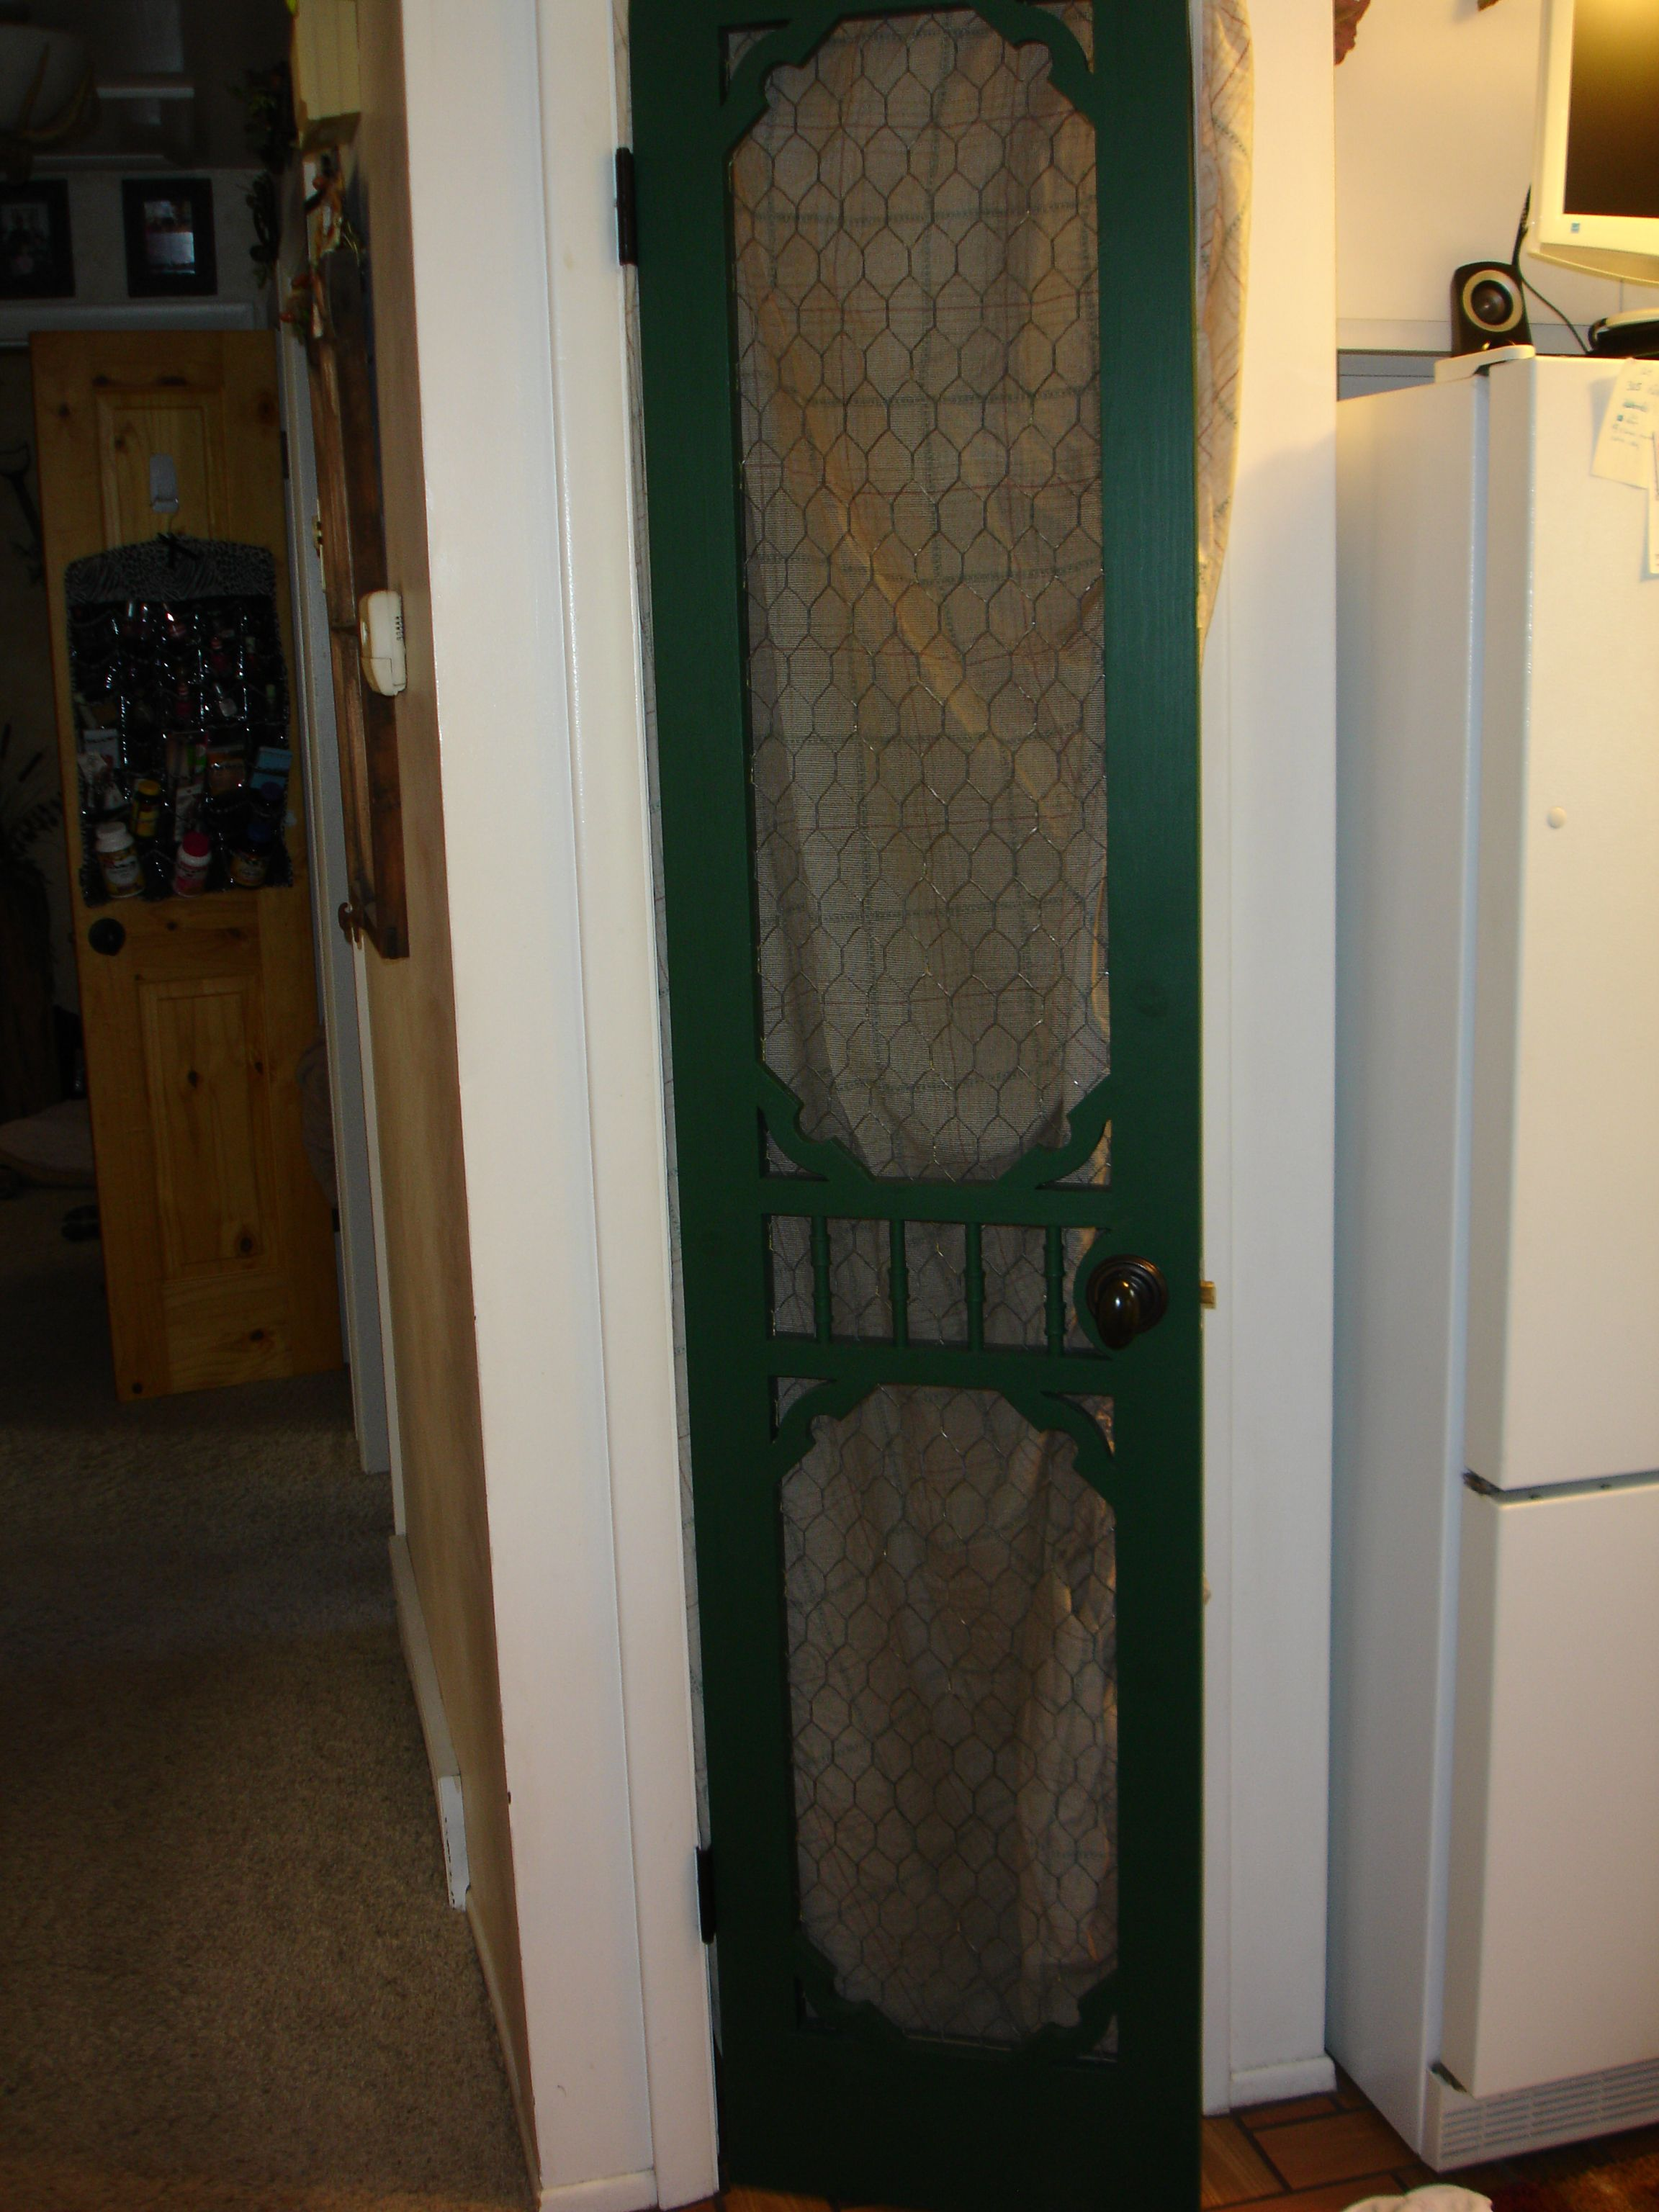 Chicken wire pantry door & Chicken wire pantry door | Made by ME! | Pinterest | Chicken wire ... Pezcame.Com